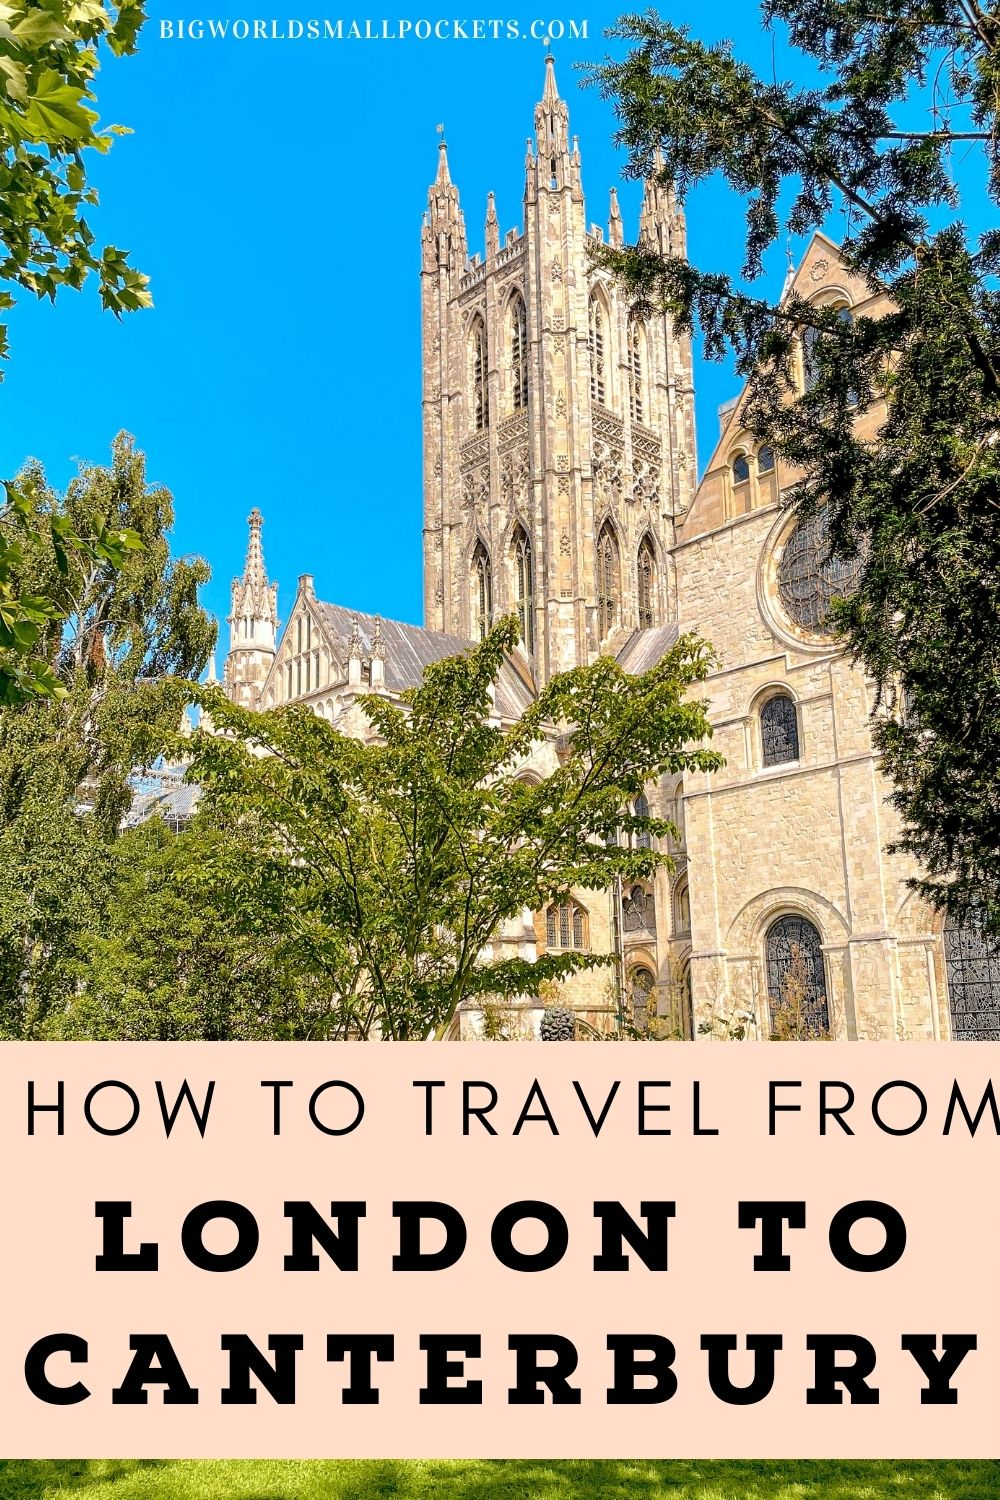 How To Travel From London to Canterbury in Kent